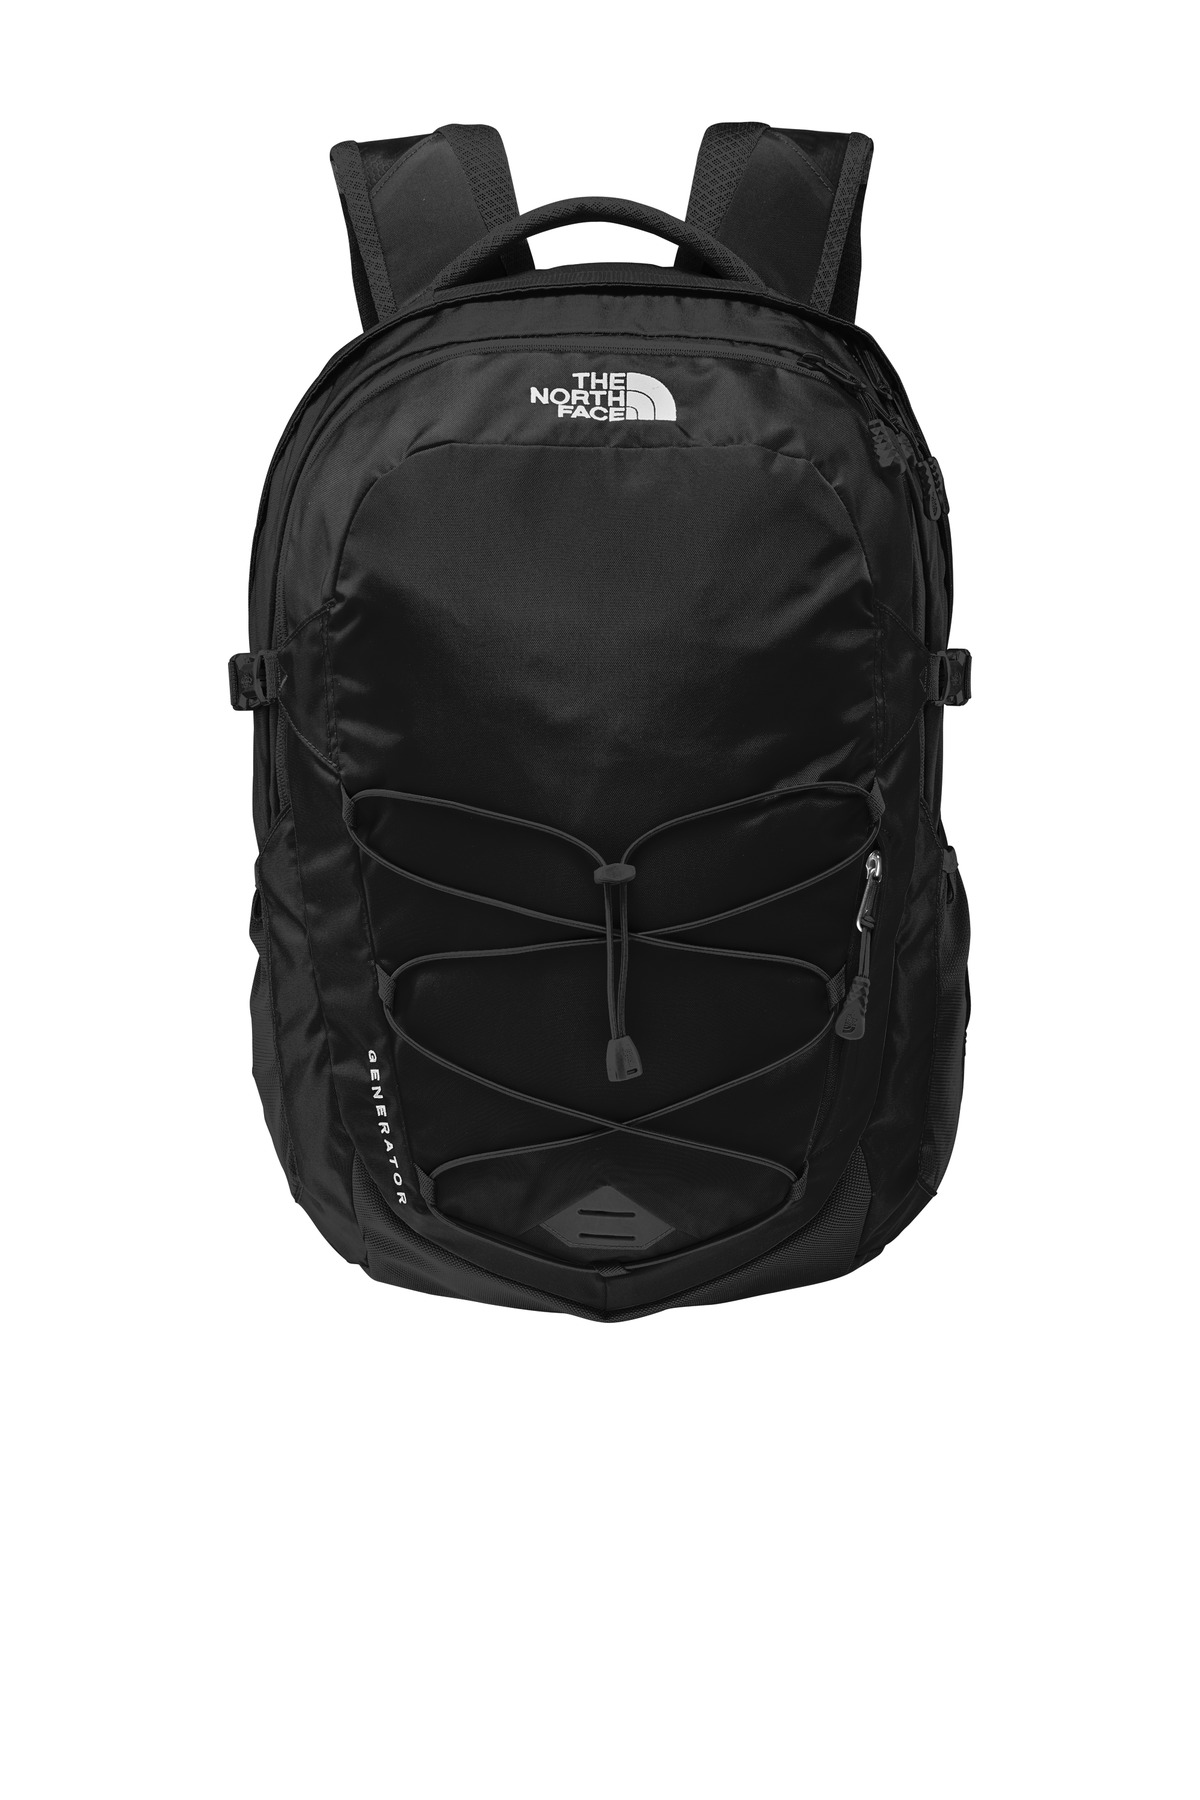 The North Face Generator Backpack.-The North Face